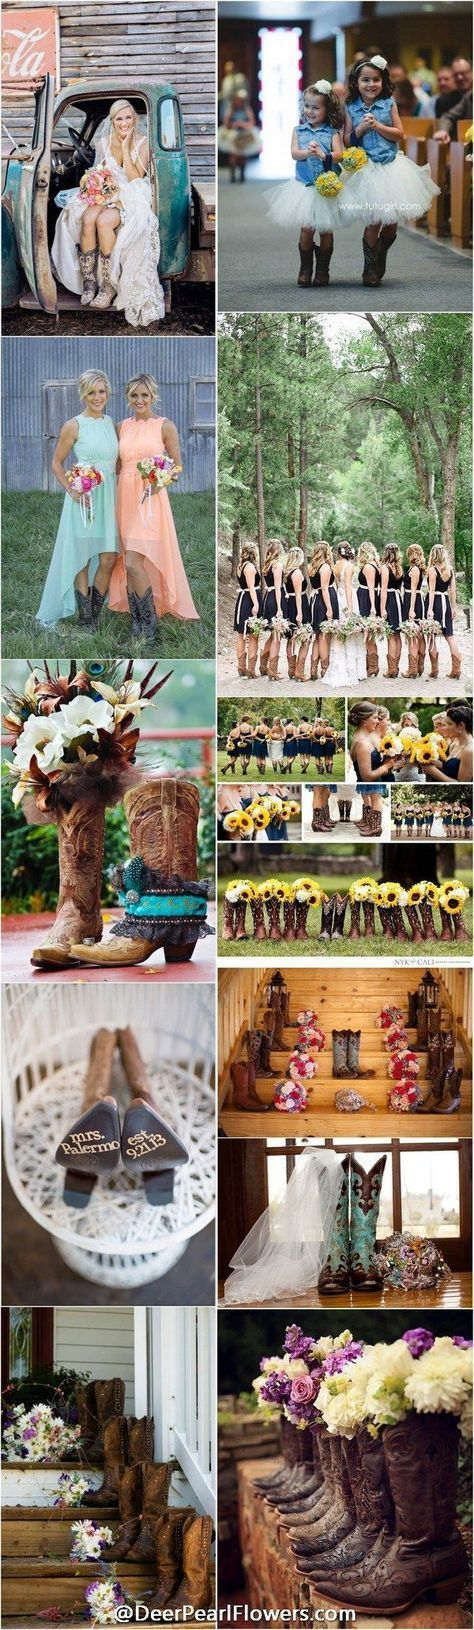 40 Rustic Country Cowgirl Boots Fall Wedding Ideas. http://www.deerpearlflowers.com/cowgirl-boots-fall-wedding-ideas/